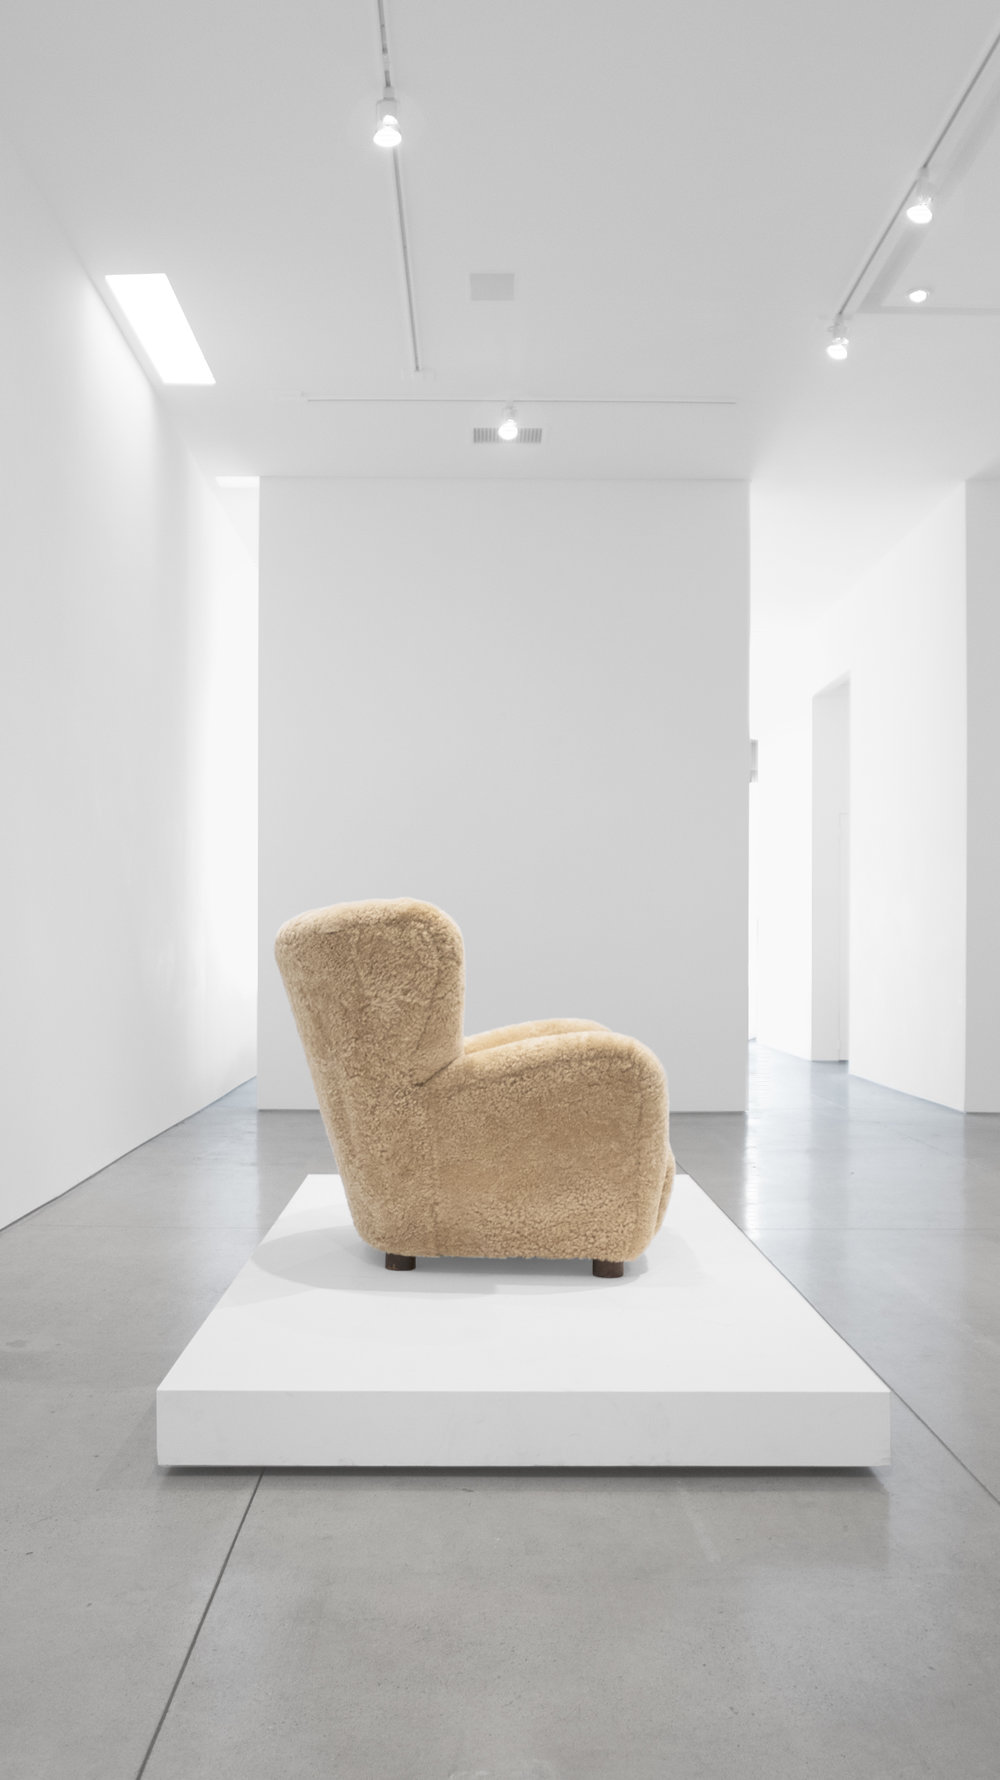 6. Mogens Lassen, attrib., Lounge Chair, c. 1940, sheepskin, stained oak, 40W x 39D x 36H inches.jpg